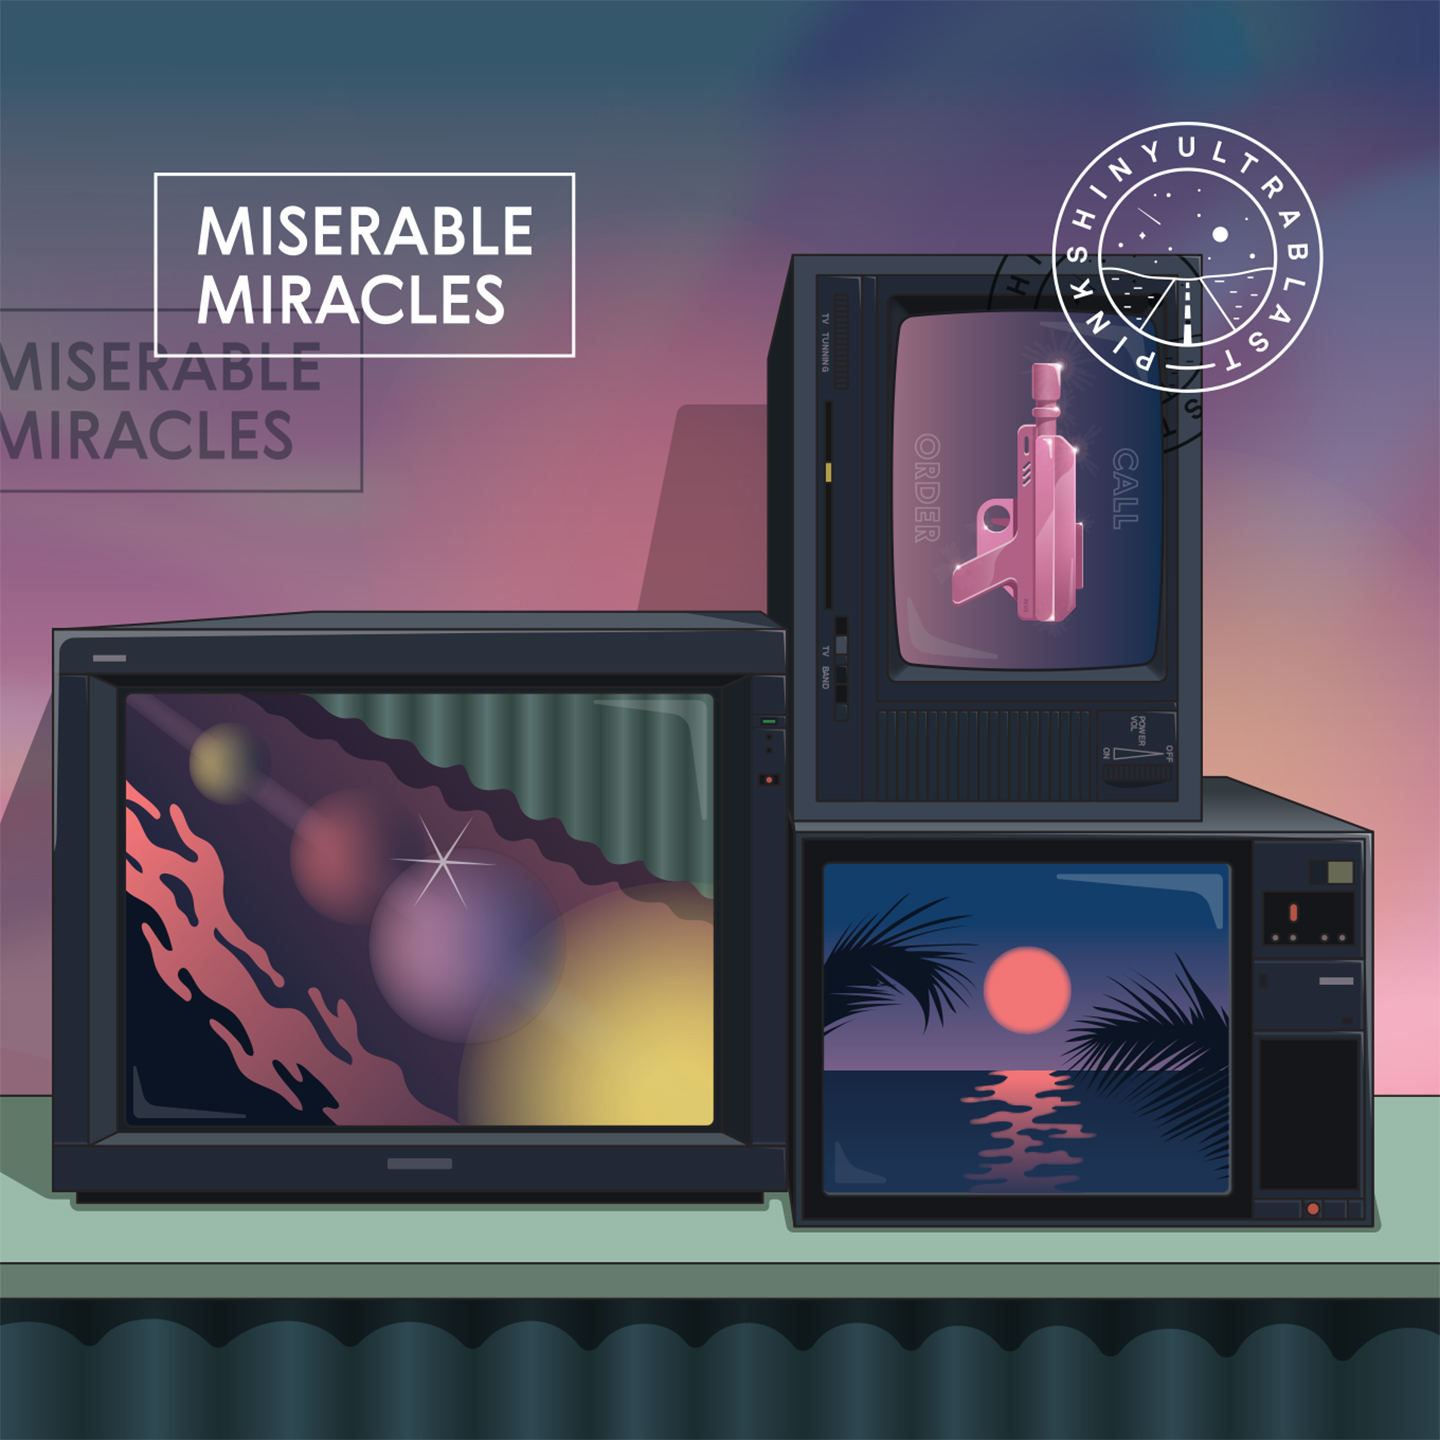 Pinkshinyultrablast - Miserable Miracles (2018)